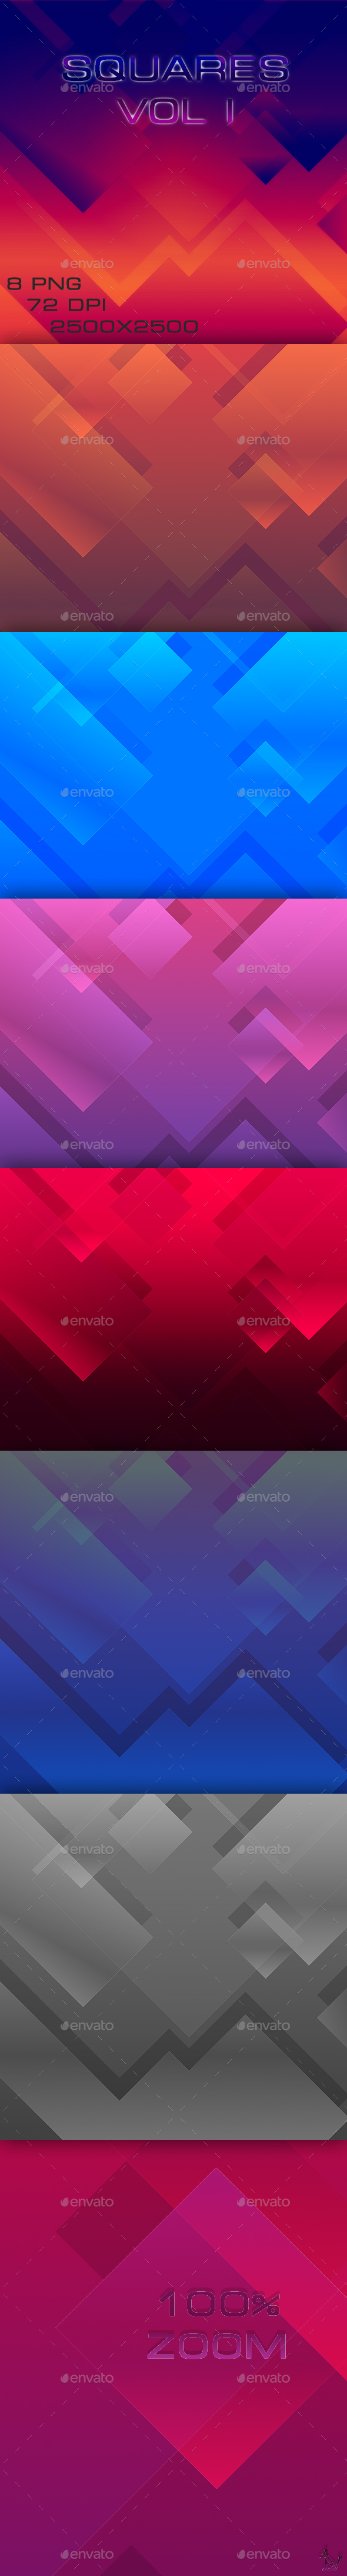 8 Square Backgrounds - Abstract Backgrounds